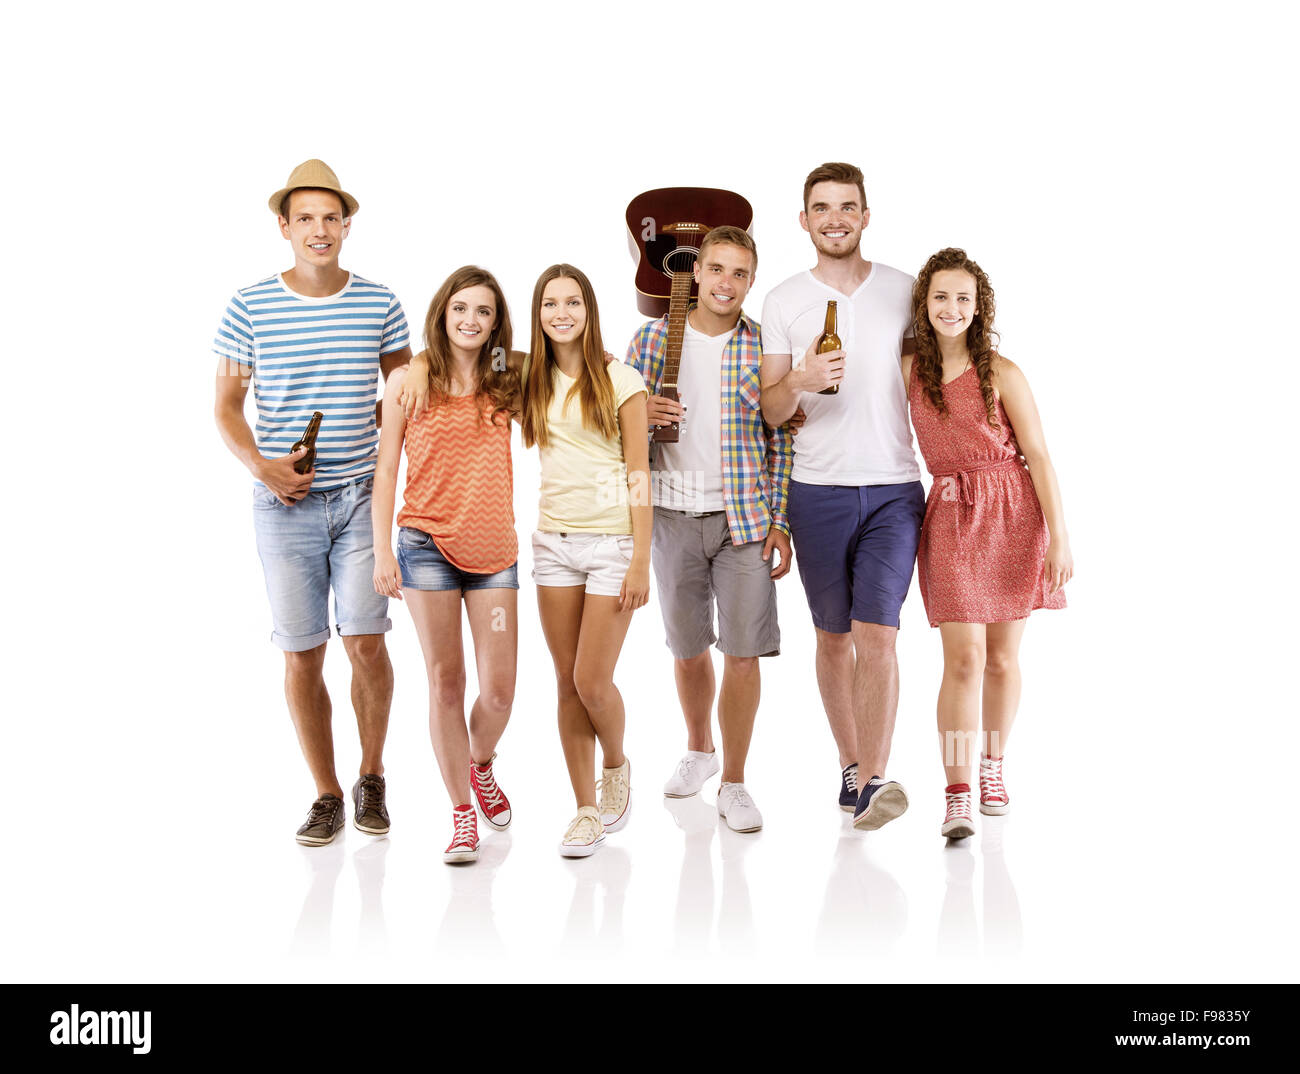 Group of happy young people walking, taking guitar and drinks with them, isolated on white background. Best friends - Stock Image